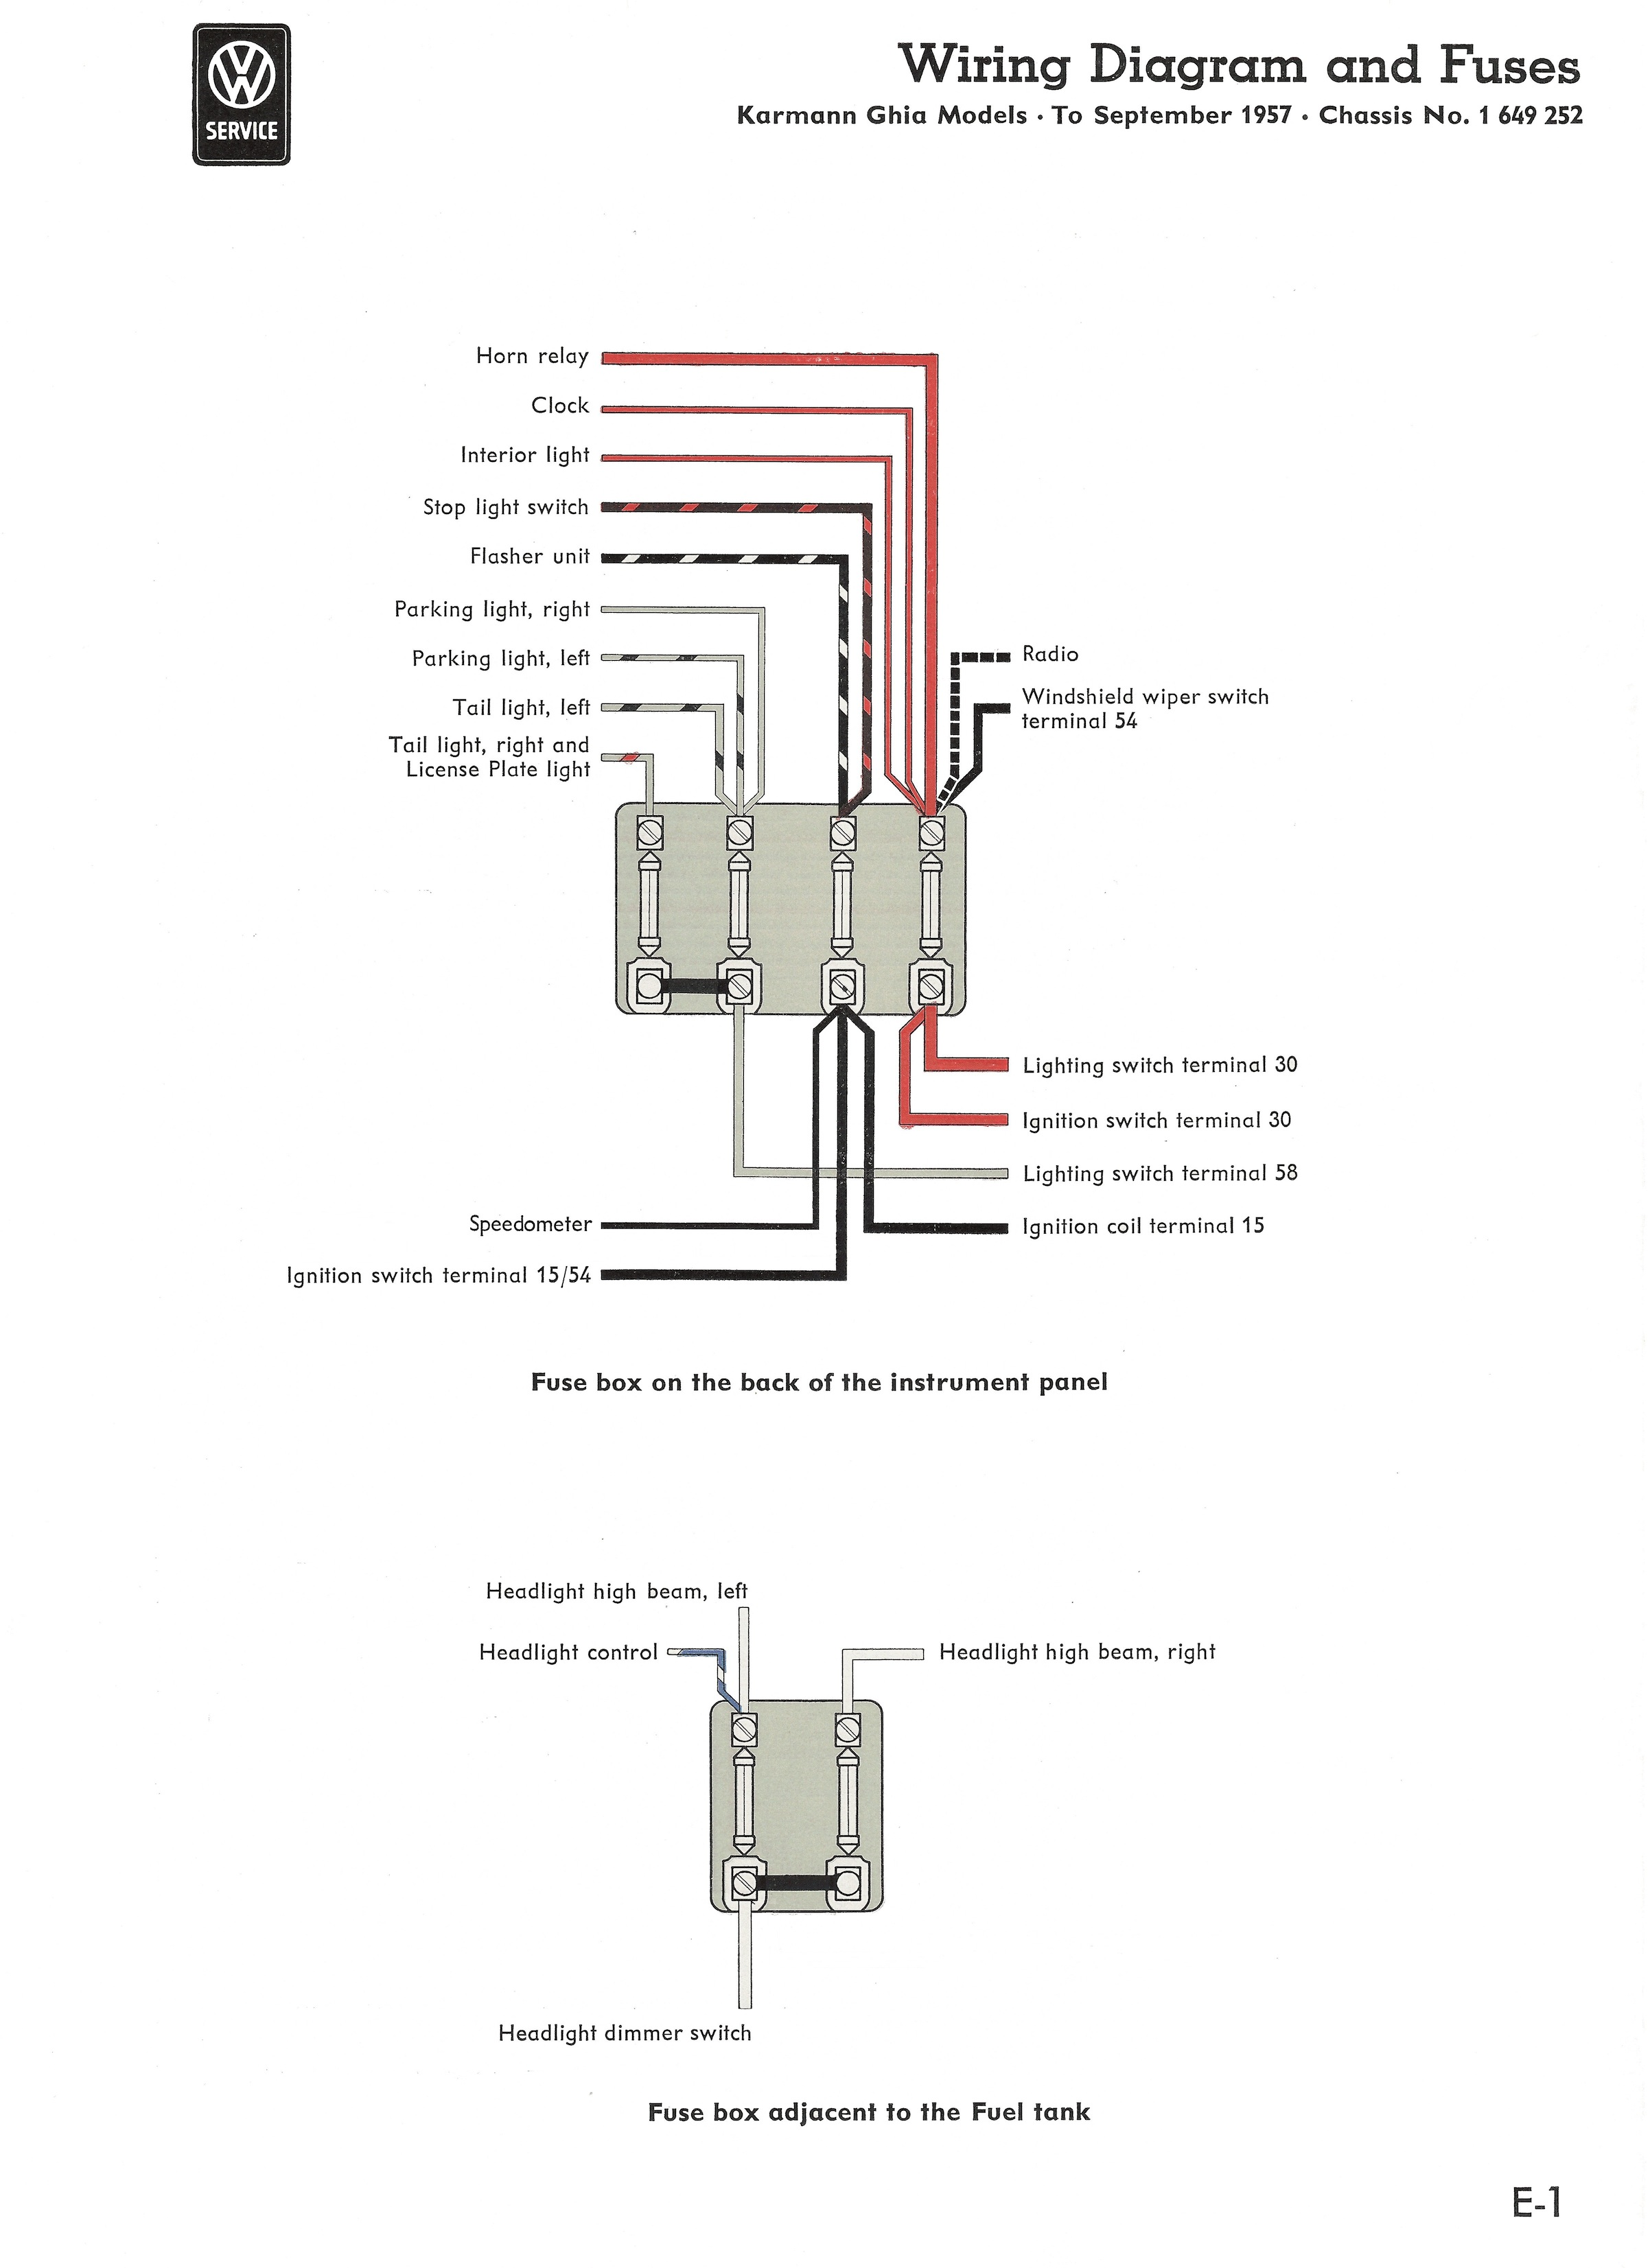 karmann ghia fuse box   21 wiring diagram images